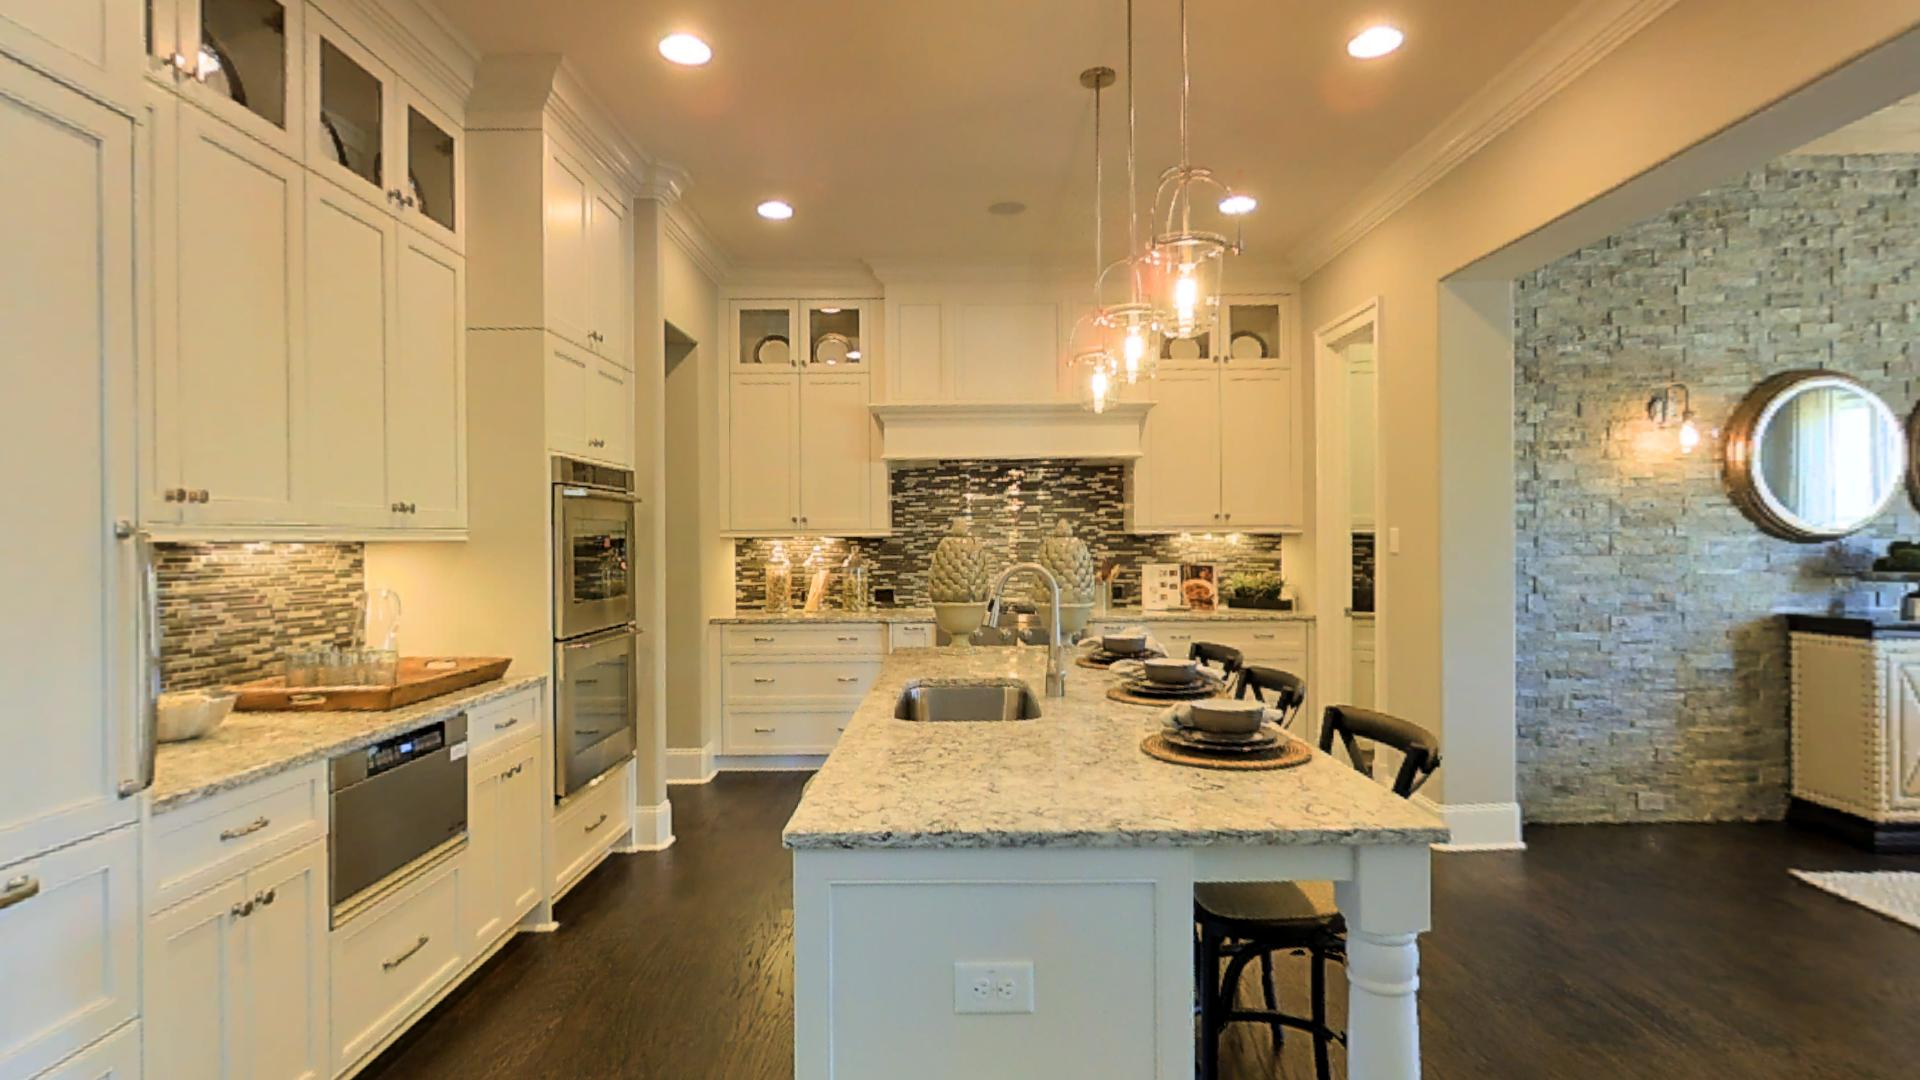 The Providence Group: The Beaumont Home Design